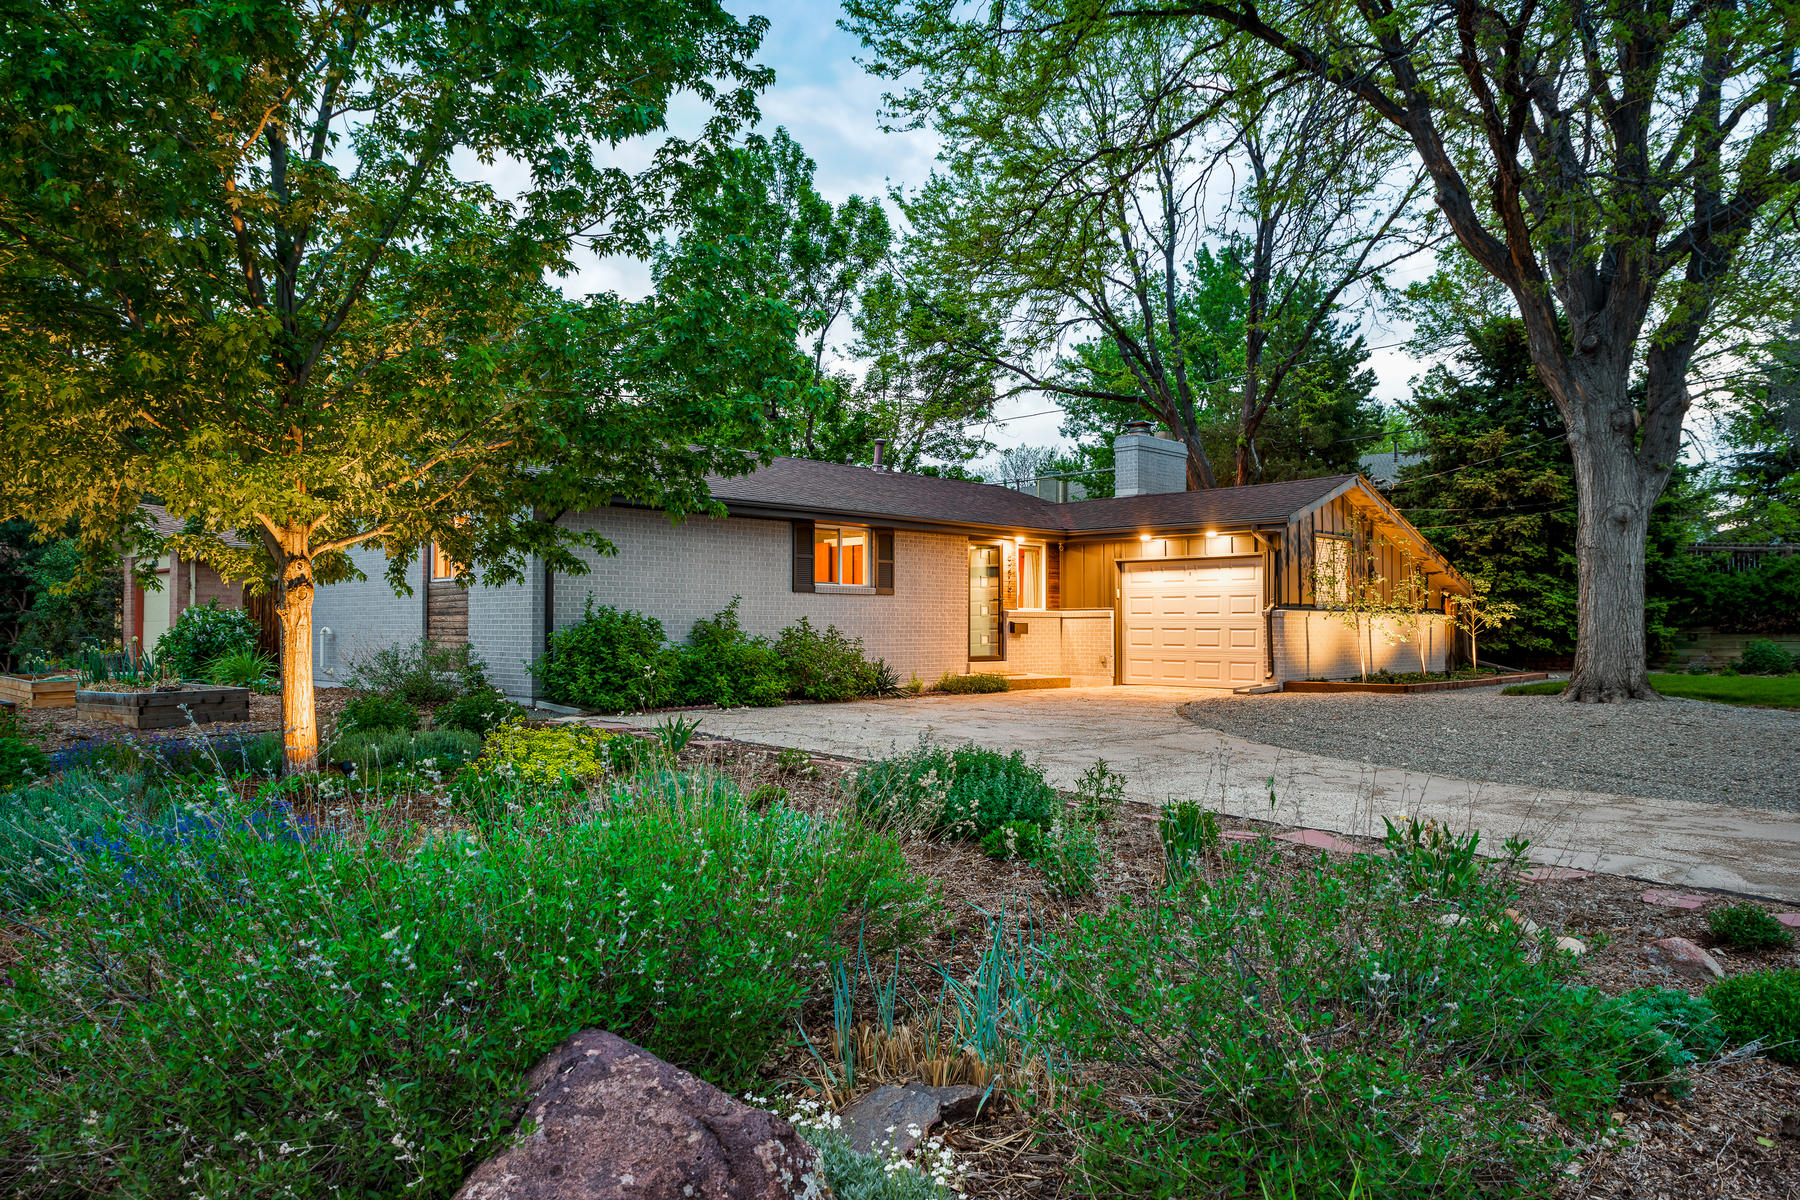 Single Family Homes for Sale at Open, Bright, Positively Charming Mid-Century Modern Ranch 6275 Nelson Street Arvada, Colorado 80004 United States